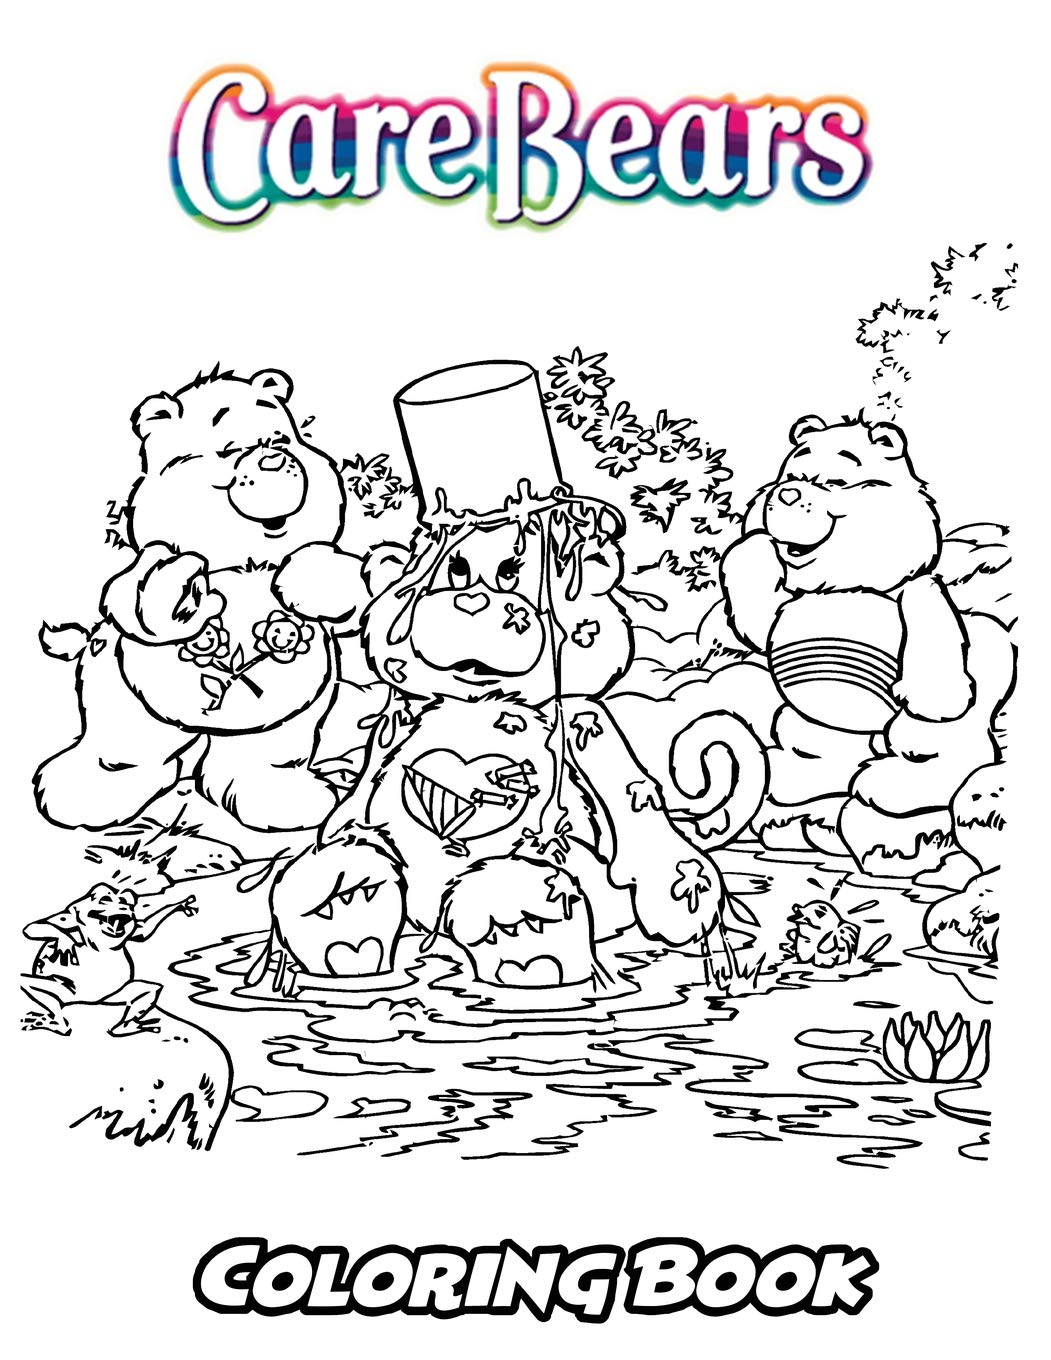 Care bears coloring book coloring book for kids and adults activity book with fun easy and relaxing coloring pages perfect for children ages 3 5 6 8